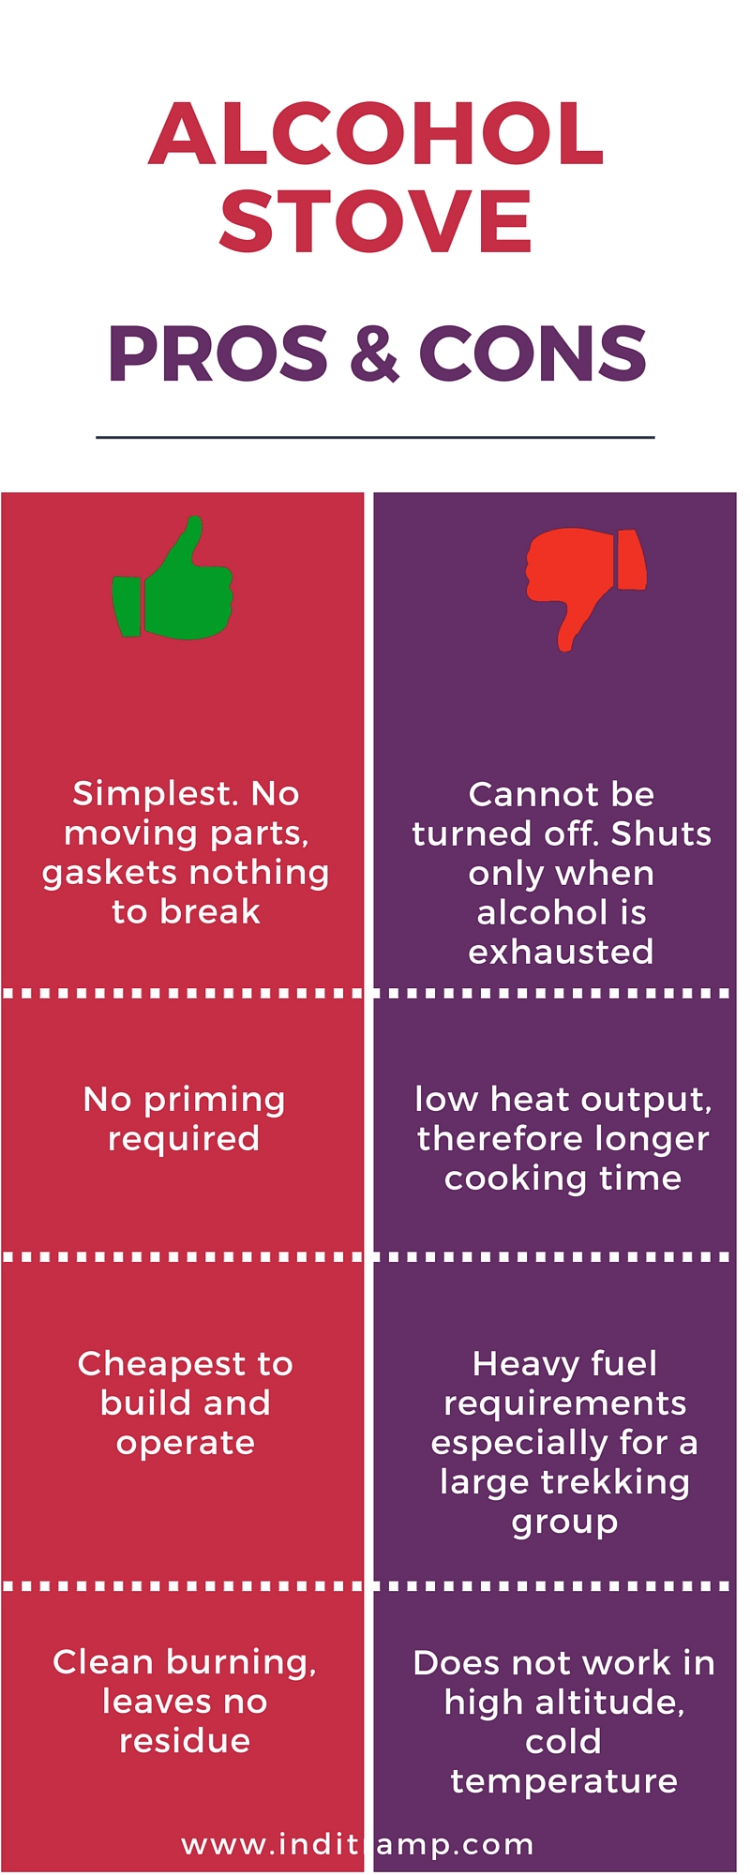 Infographic summarising the pros and cons for an alcohol stove